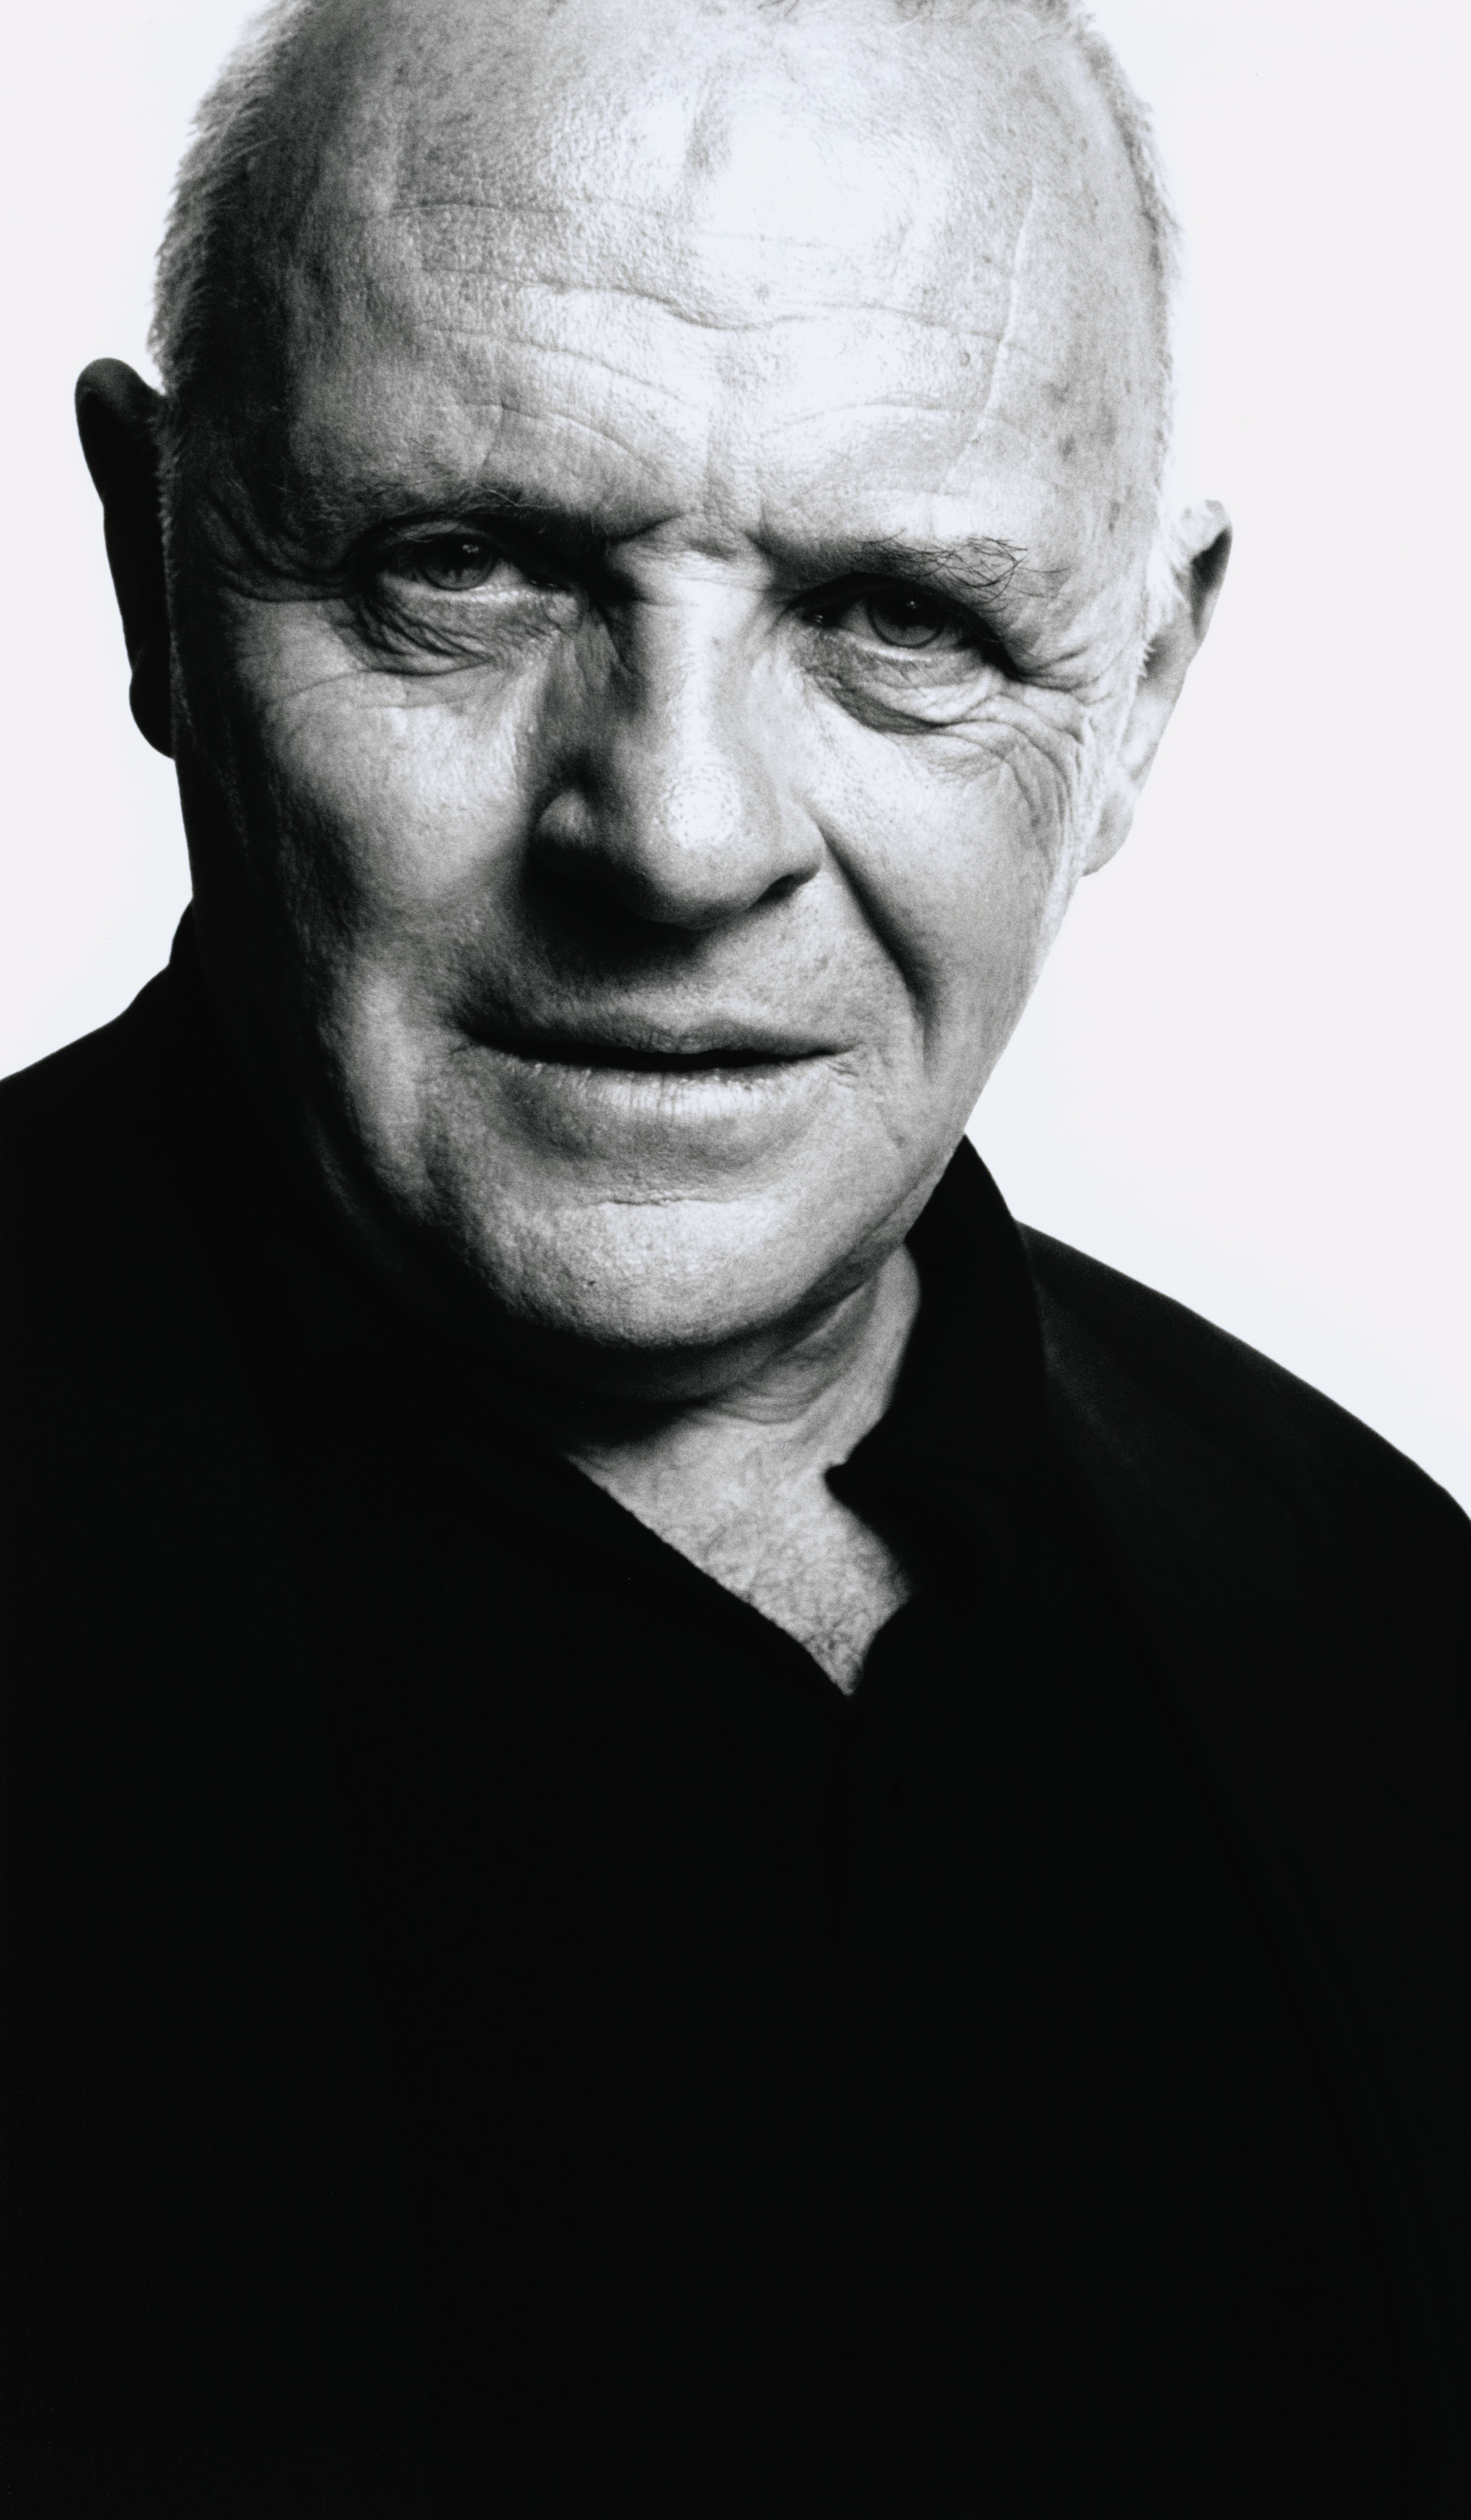 anthony hopkins and the waltz goes on